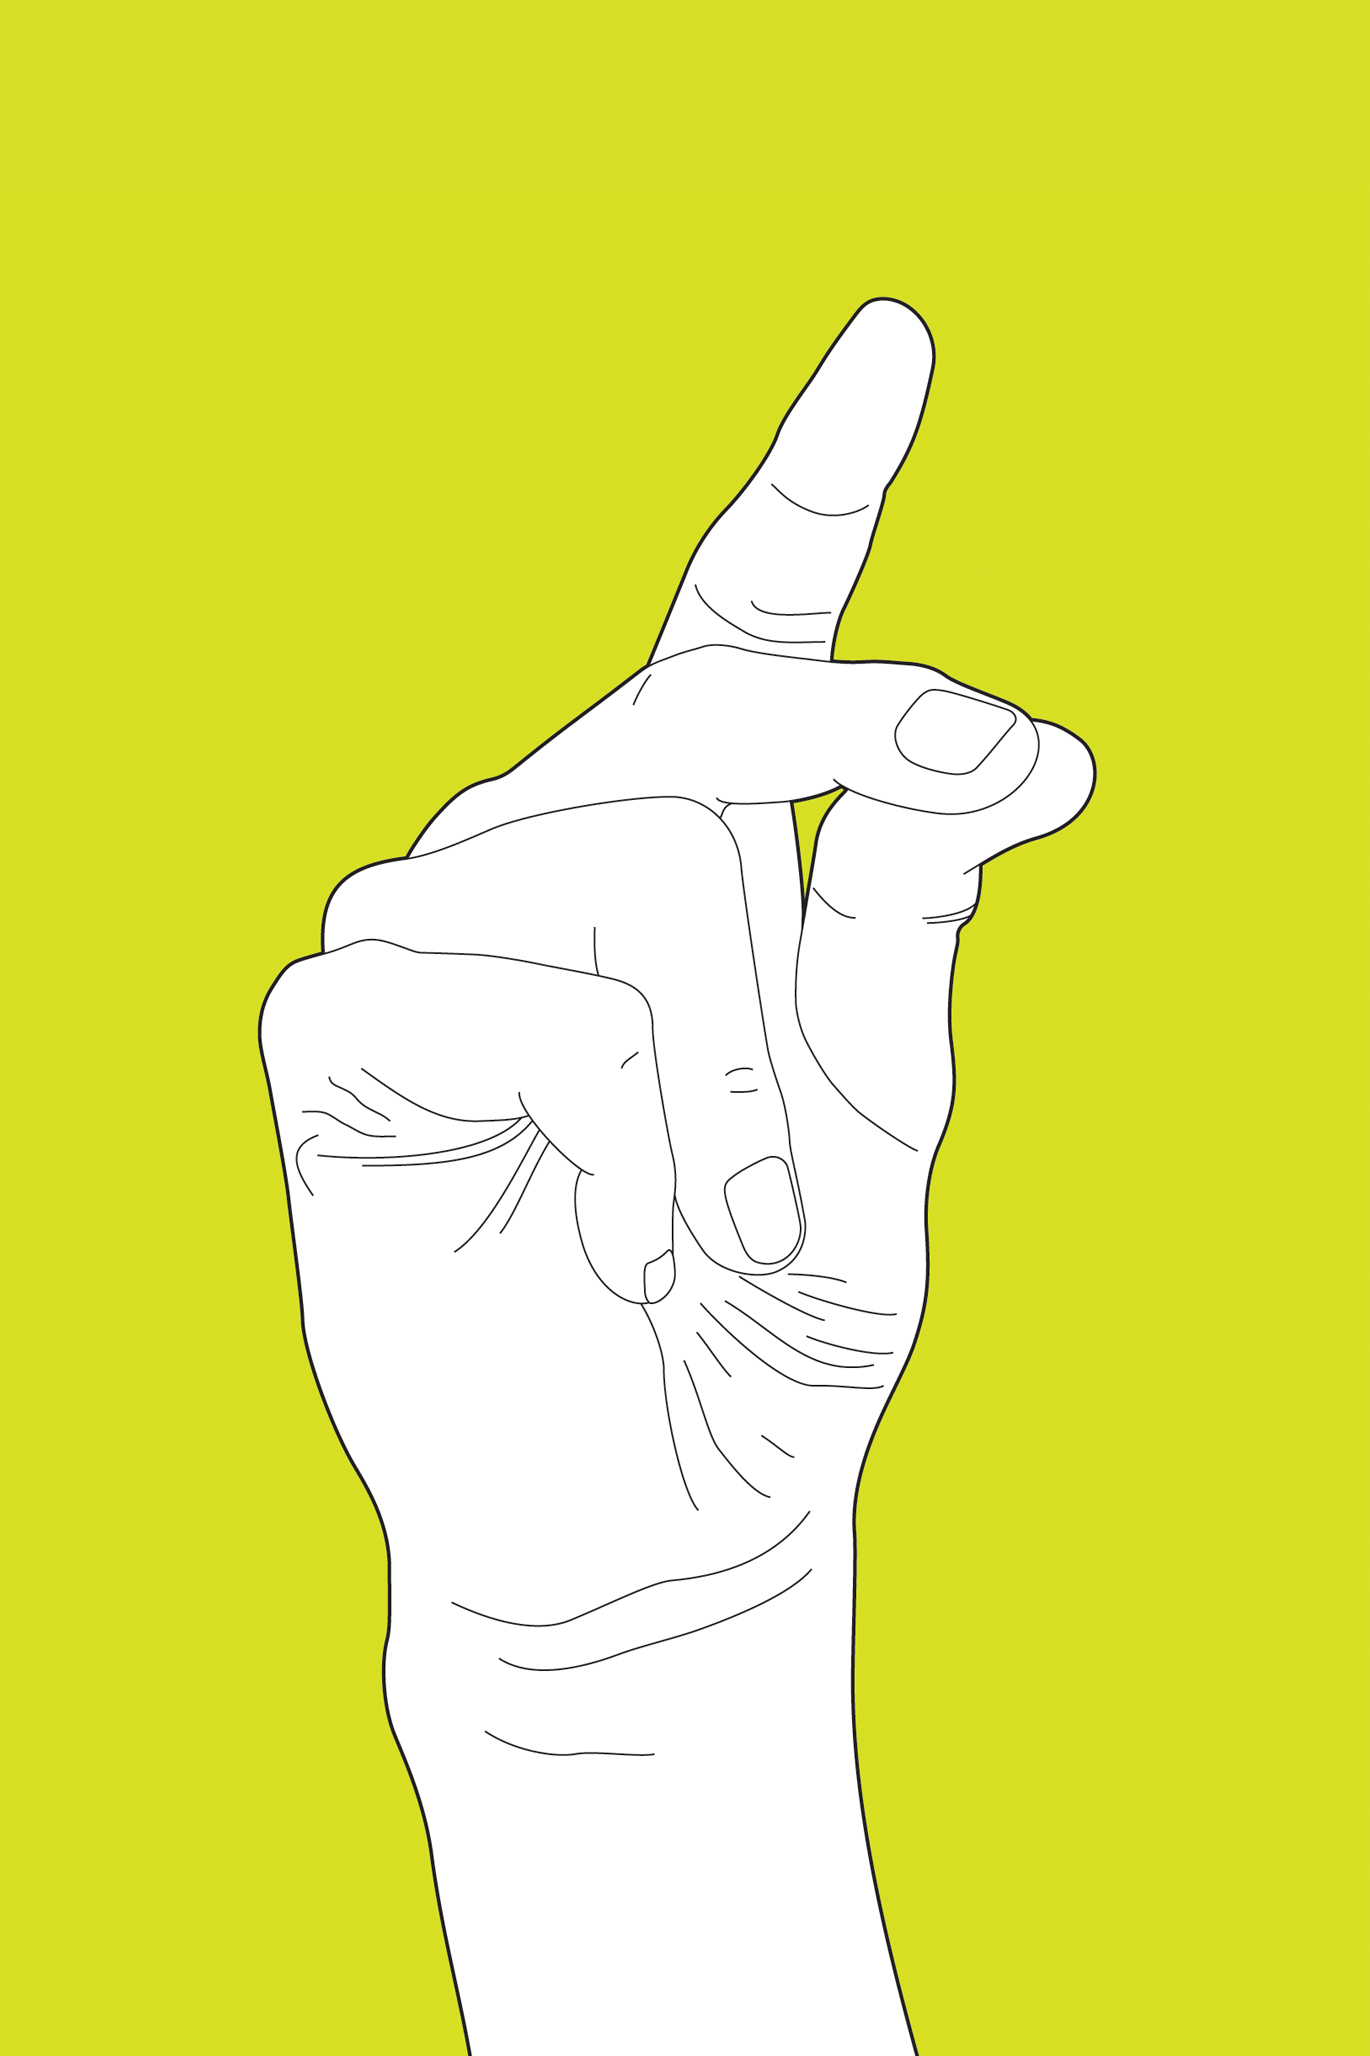 Illustration of hand snapping against yellow-green color